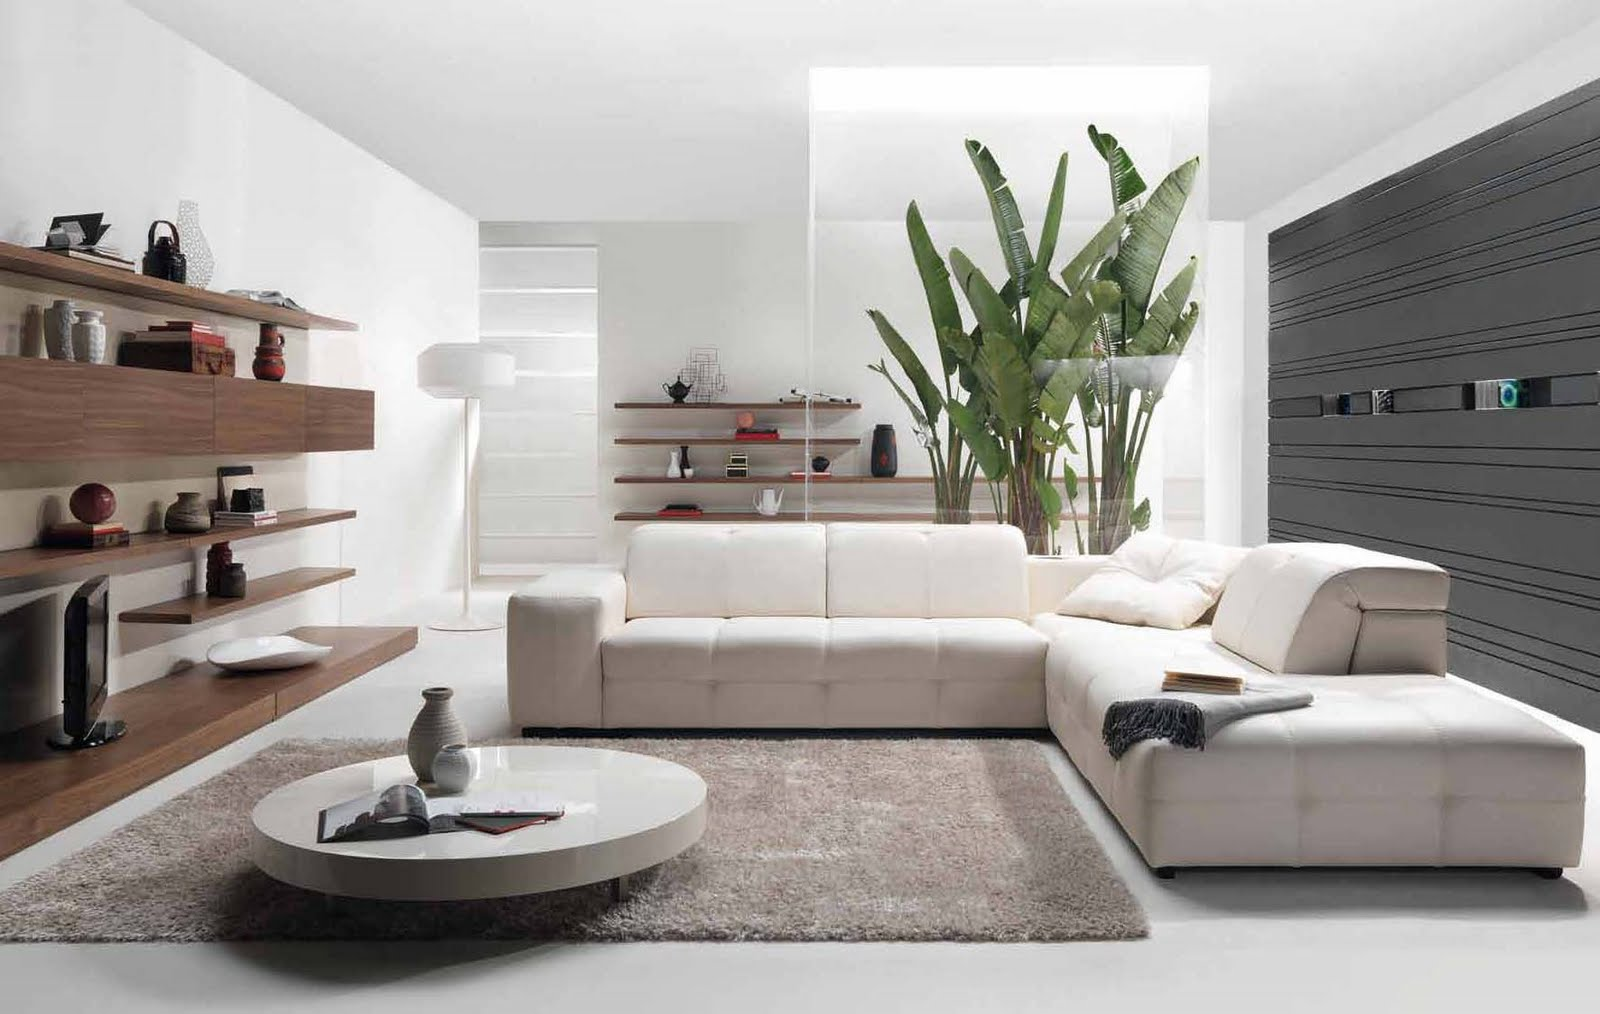 Modern home interior furniture designs diy ideas Living room couch ideas